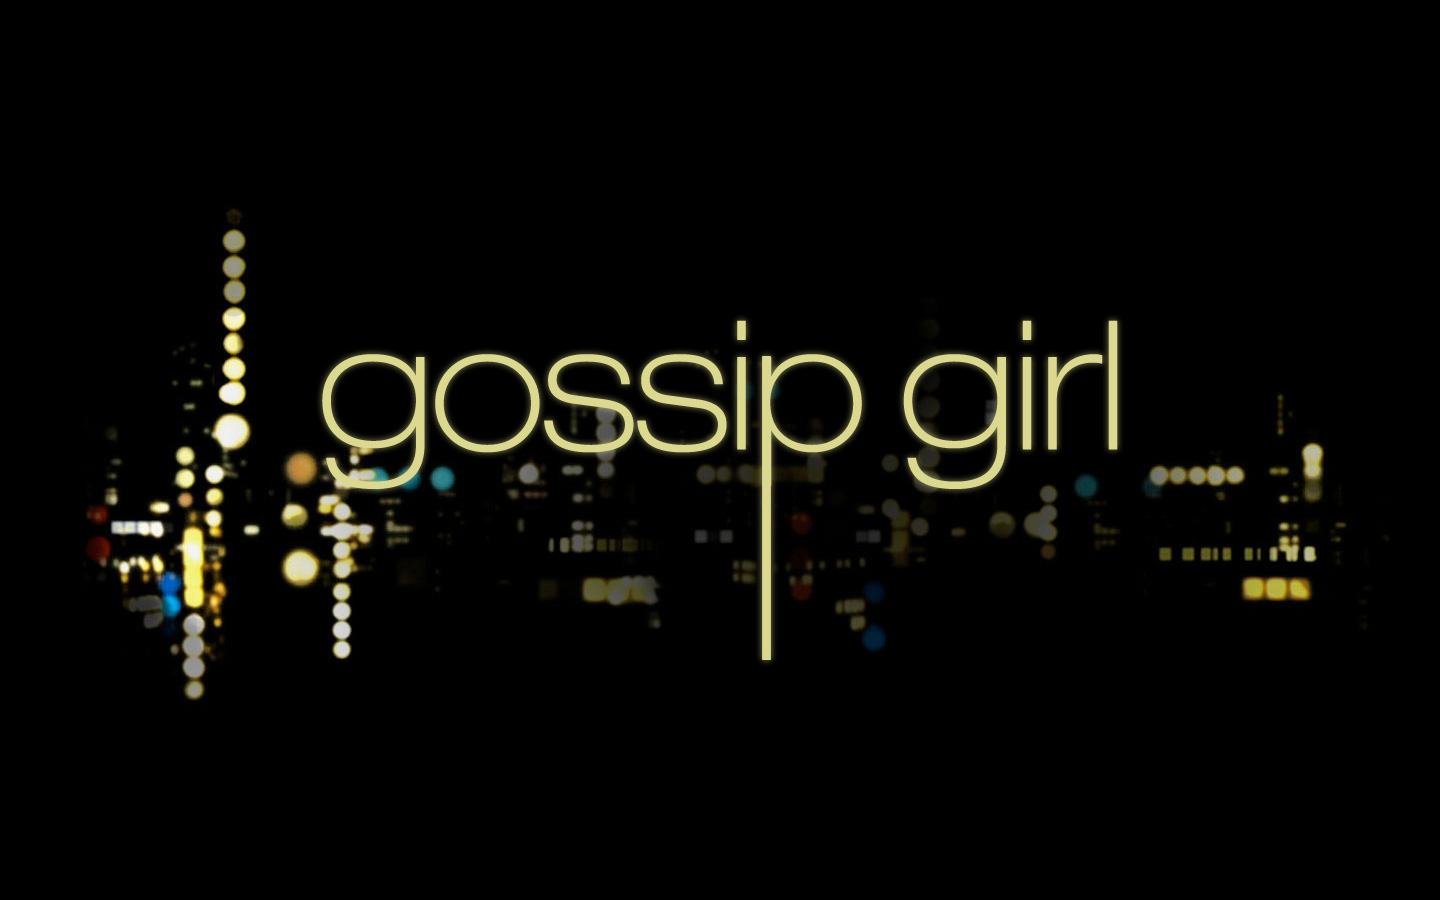 Sad Girl Background Wallpaper 8tracks Radio Xoxo Gossip Girl 9 Songs Free And